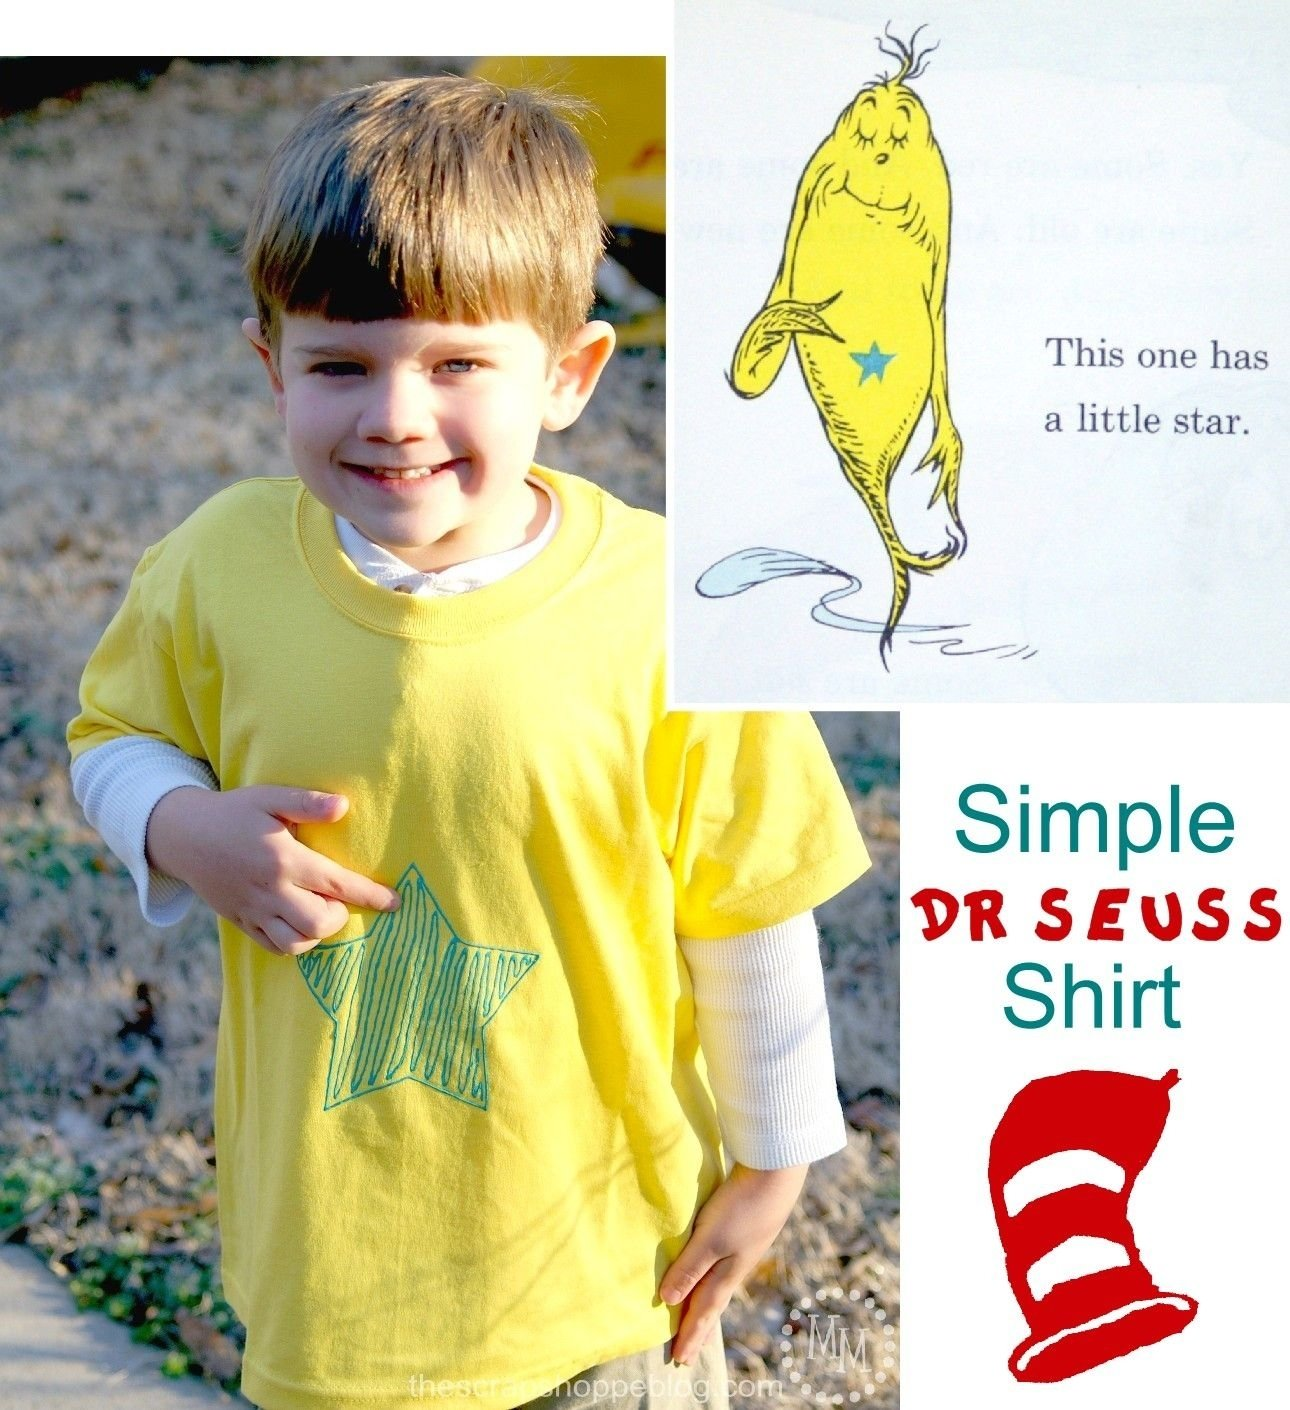 10 Nice Dr Seuss Character Costume Ideas super simple idea for a dr seuss character costume from one fish 2020